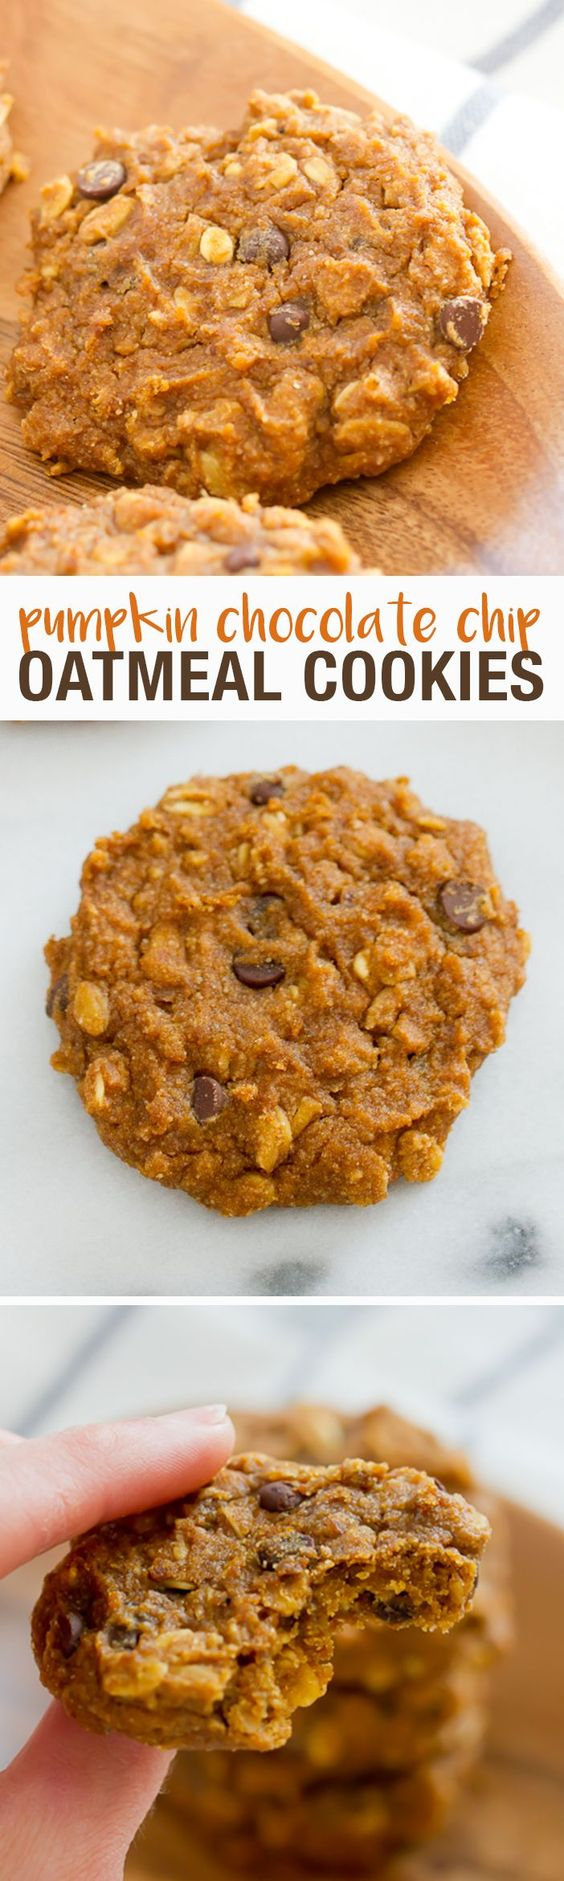 Clean Eating Pumpkin Chocolate Chip Oatmeal Cookies // Natural ingredients, gluten-free and vegan. Only 90 calories and 2 grams of sugar per cookie!